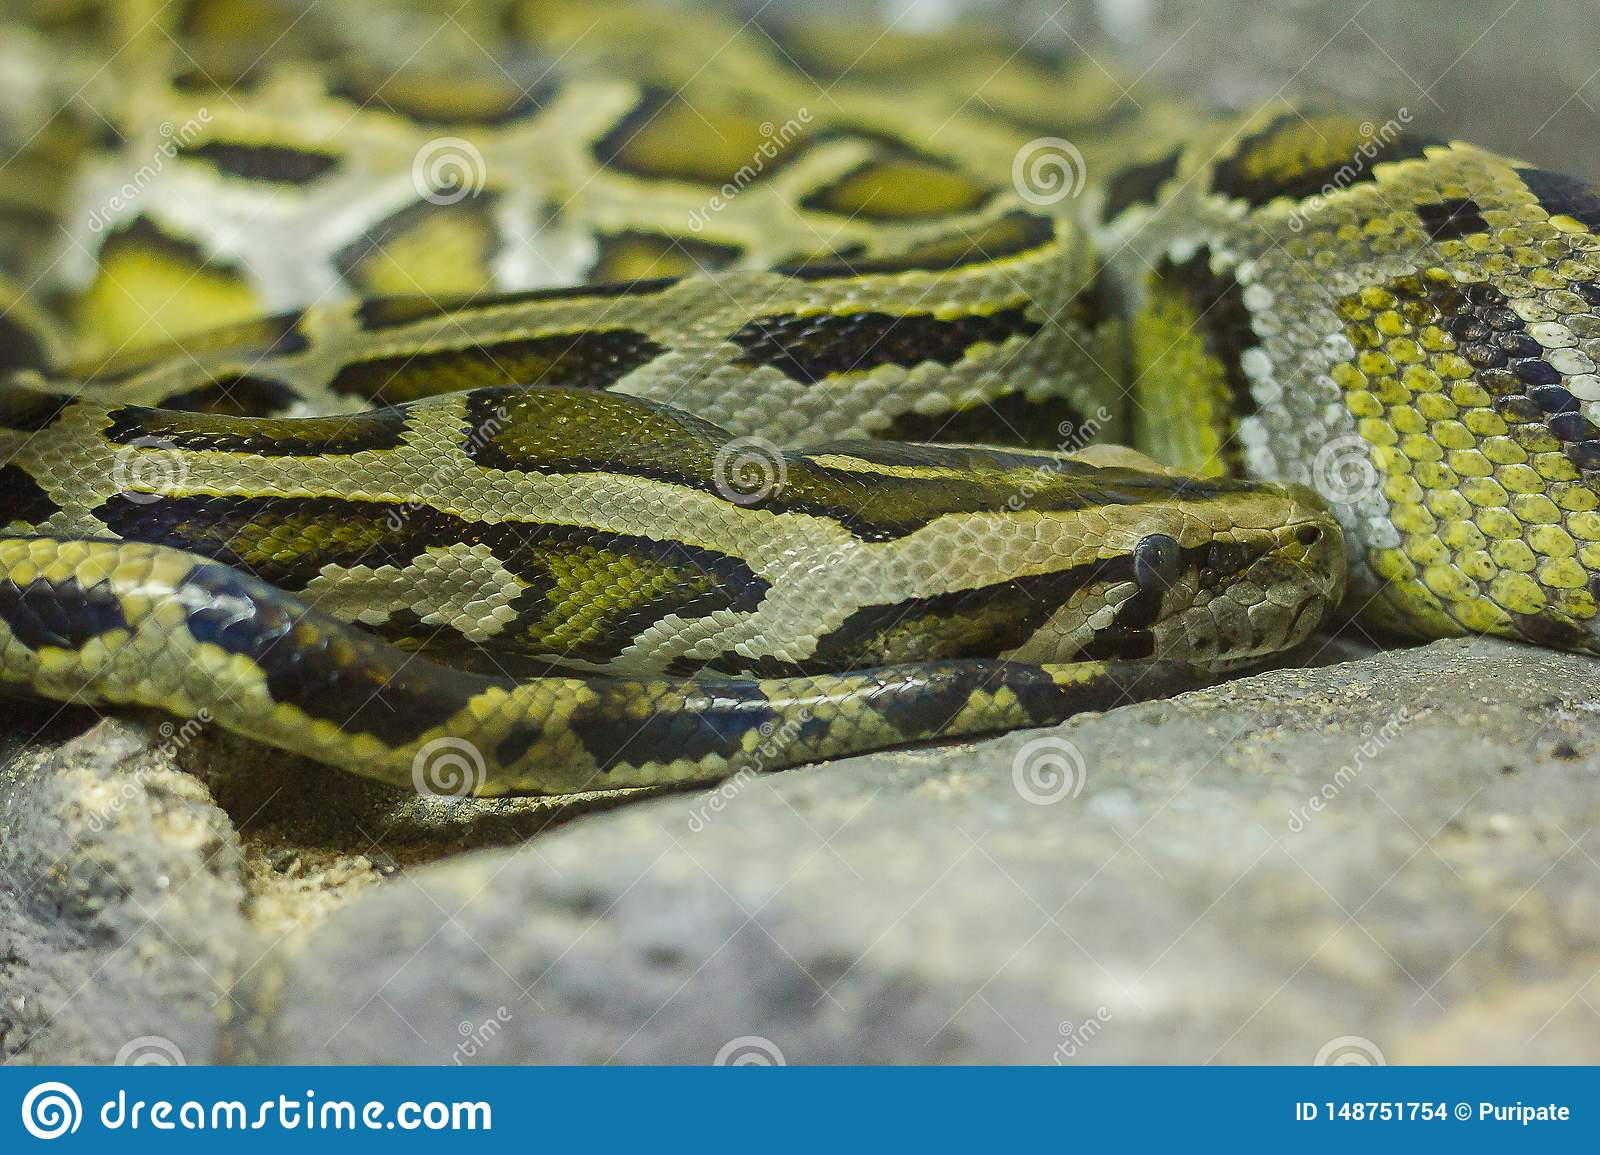 Burmese python curled up on the rock.